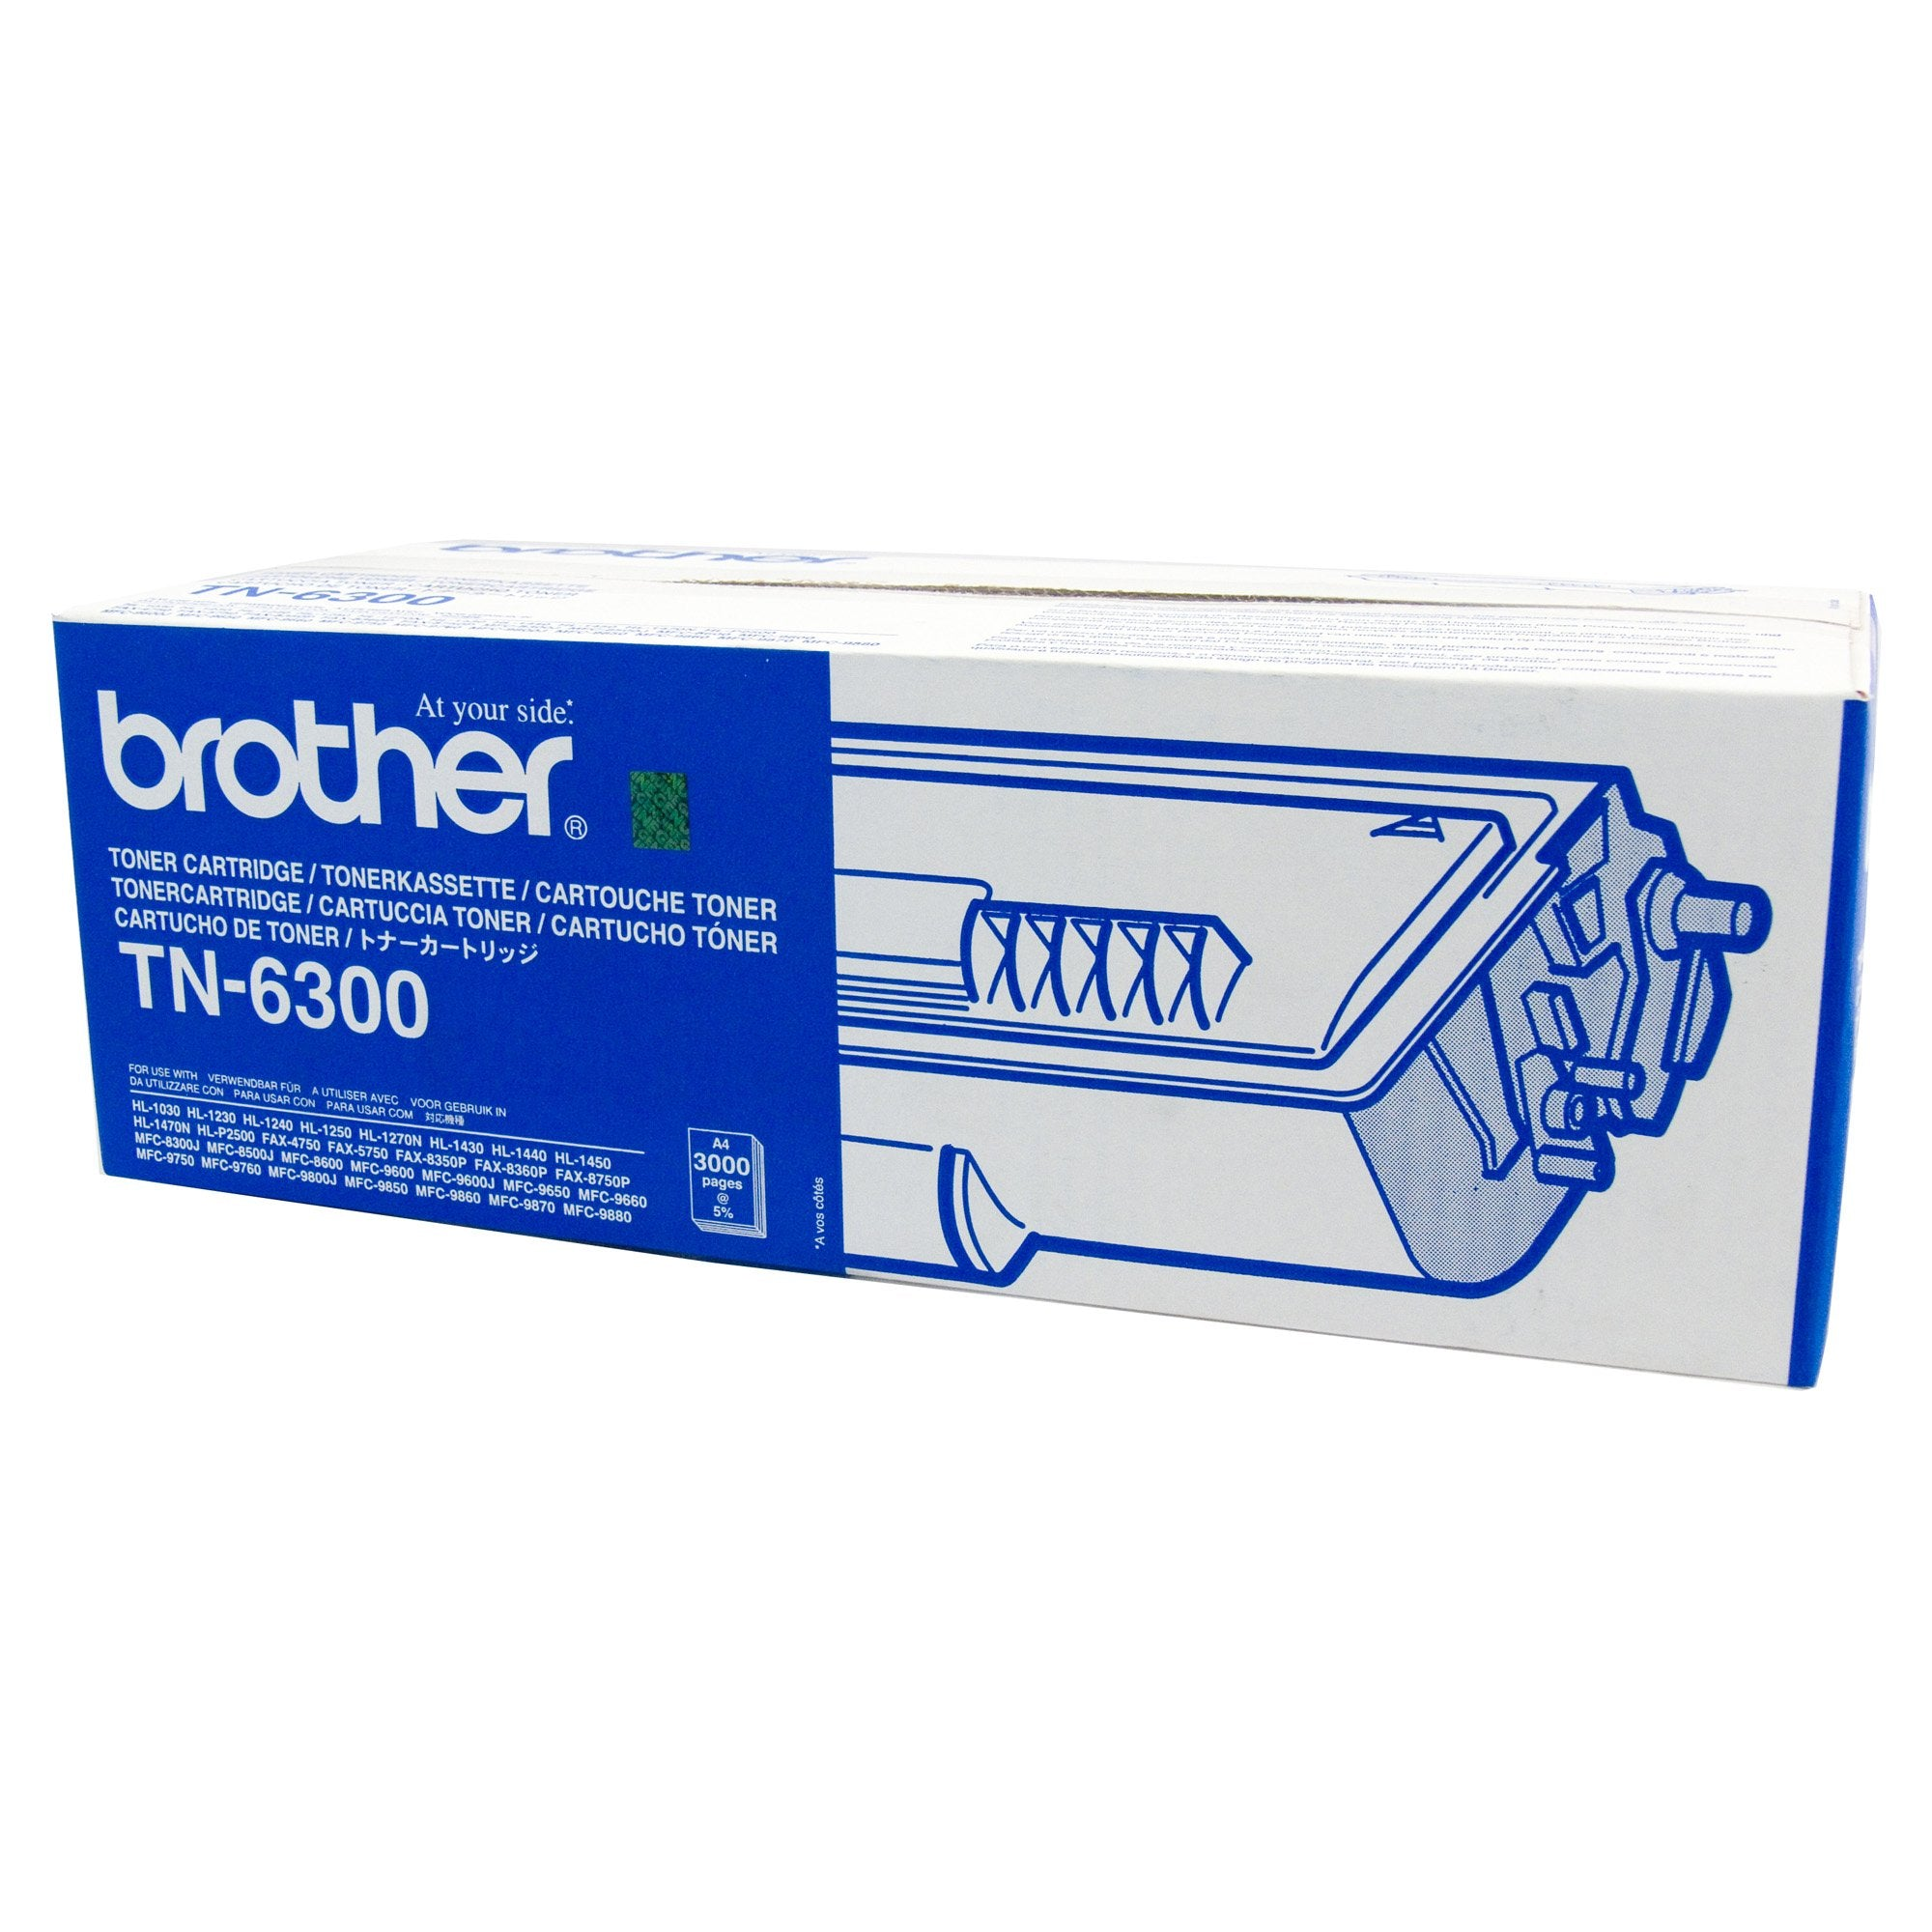 Brother TN-6300 Black Toner Cartridge